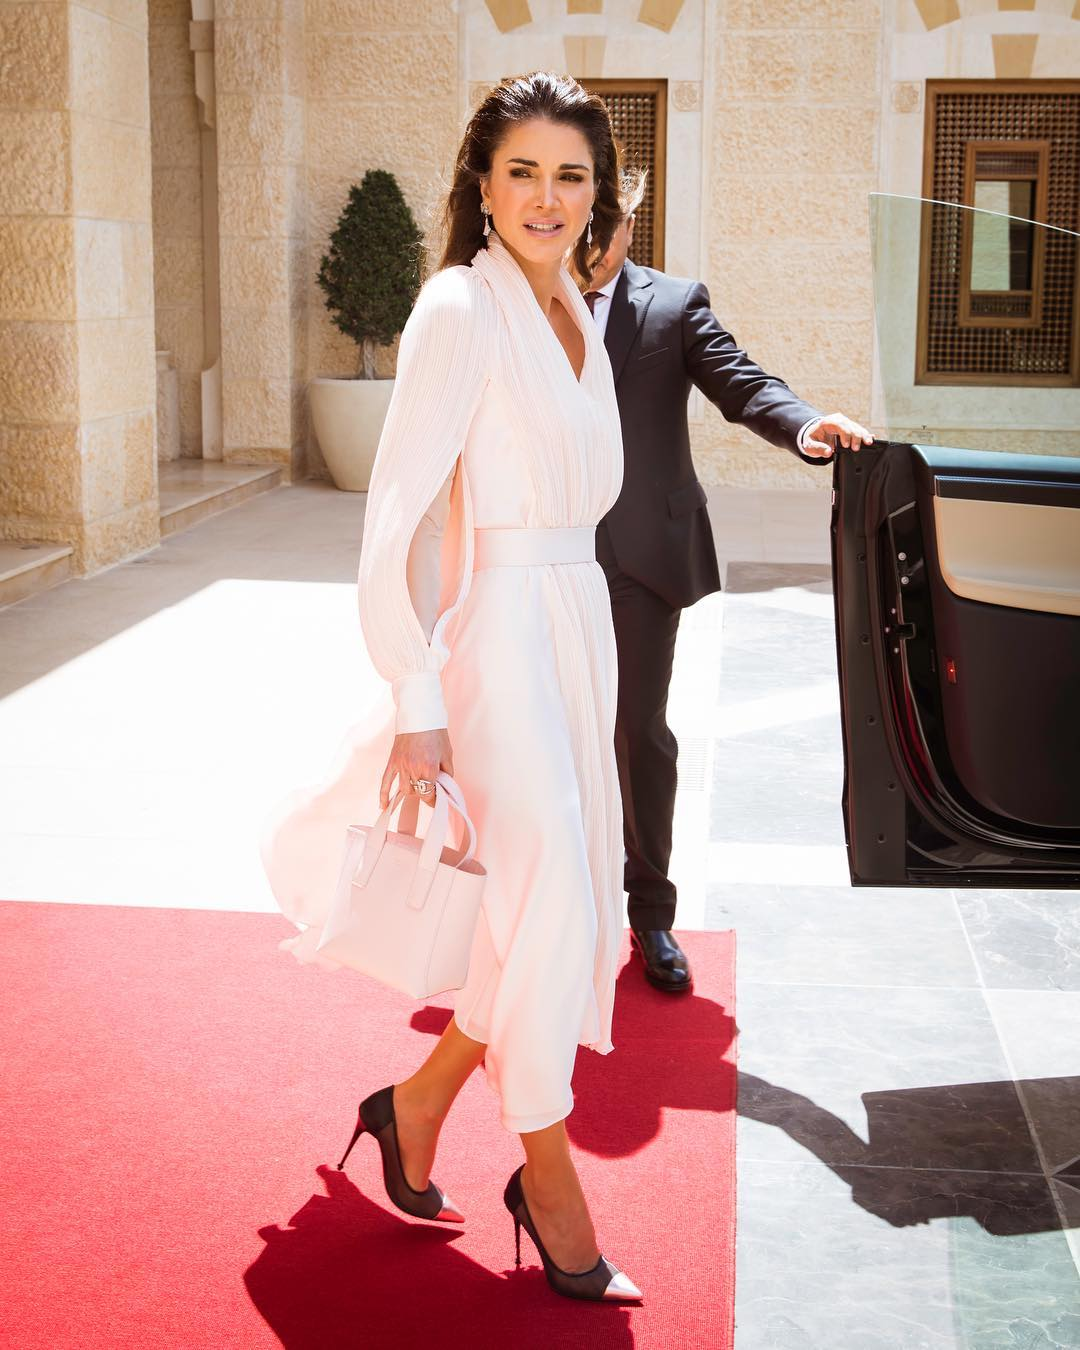 Queen Rania of Jordan has once again claimed Kate Middleton's crown when it comes to being the world's most stylish of royal.<br /> <br /> For an appearance in Amman on Tuesday, the eternally chic Queen opted for a casual look with a sprinkle of polish courtesy of luxury Japanese designer, Adeam. A pair of metallic stilettos and micro handbag from Tom Ford gave the look an edgy finish.<br /> <br /> Whether she's reforming her country's education system or attending an international gala, Her Majesty never fails to deliver a line-up of timelessly elegant outfits that pack a punch.<br /> <br /> Rania's royal wardrobe may be filled with likes of Salvatore Feragamo, Antonio Berardi and Alexander McQueen, but she is also a promoter of Middle Eastern designers such as Elie Saab and Hussein Bazaza.<br /> <br /> Click through to see some of the recent fashion wins of Queen Letizia of Spain.